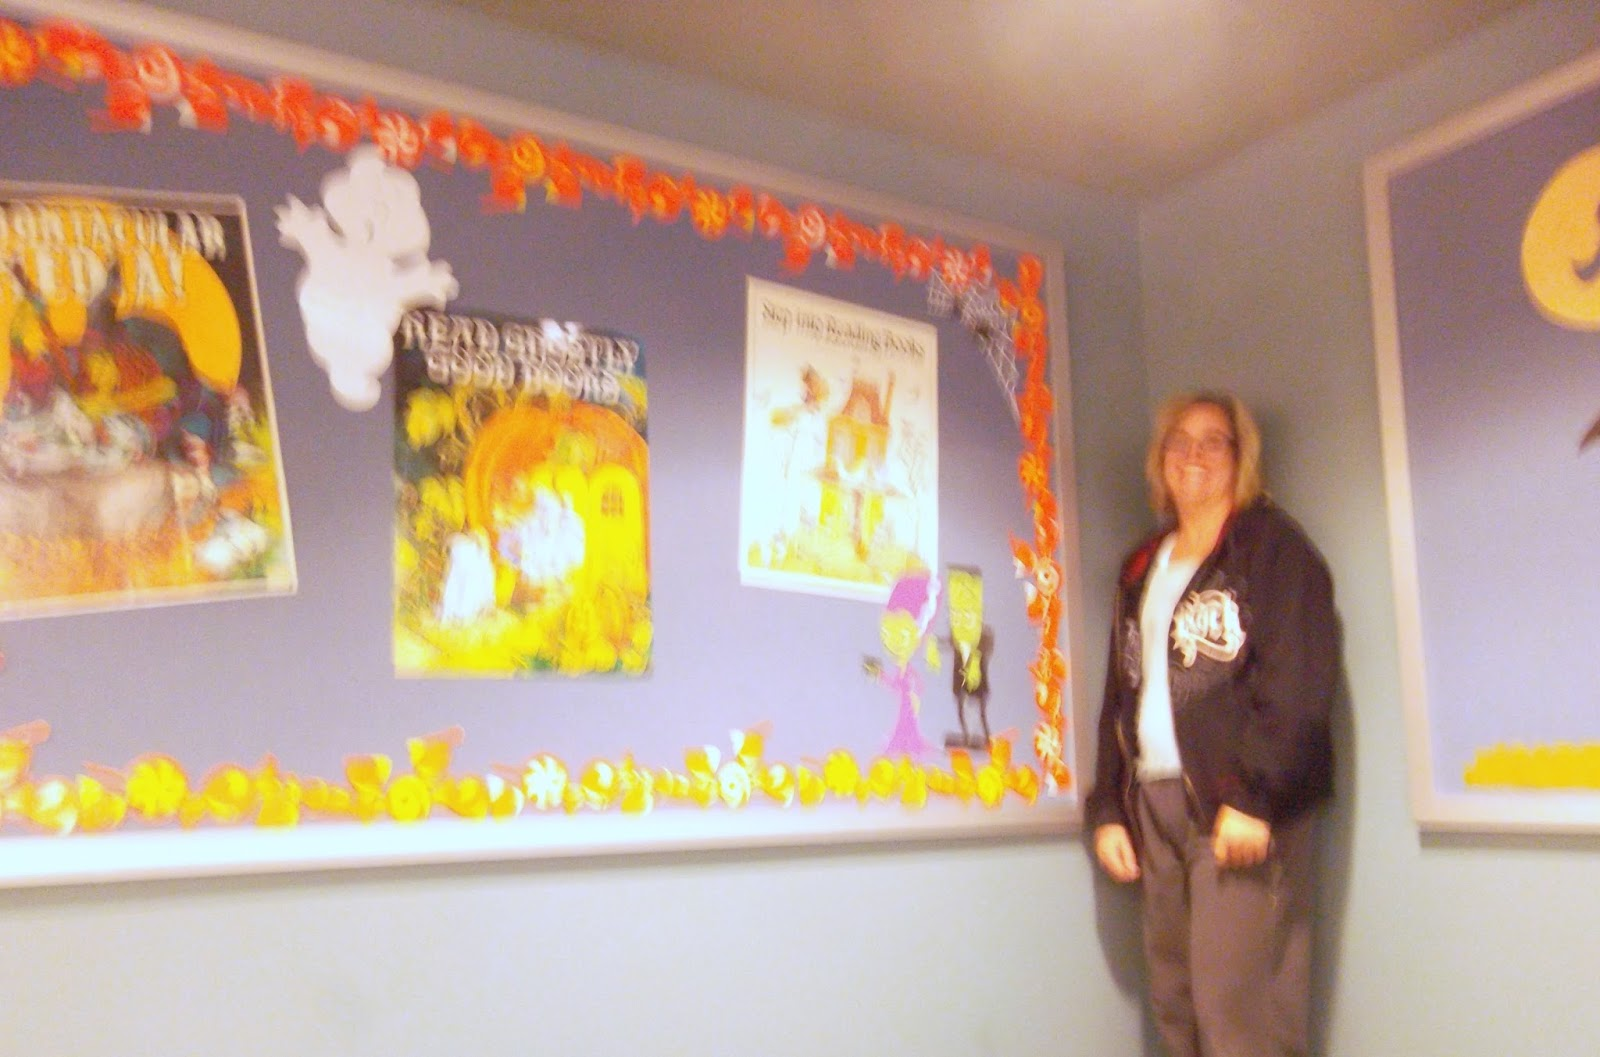 CynthiaParkhill: Halloween bulletin boards in Bellview library